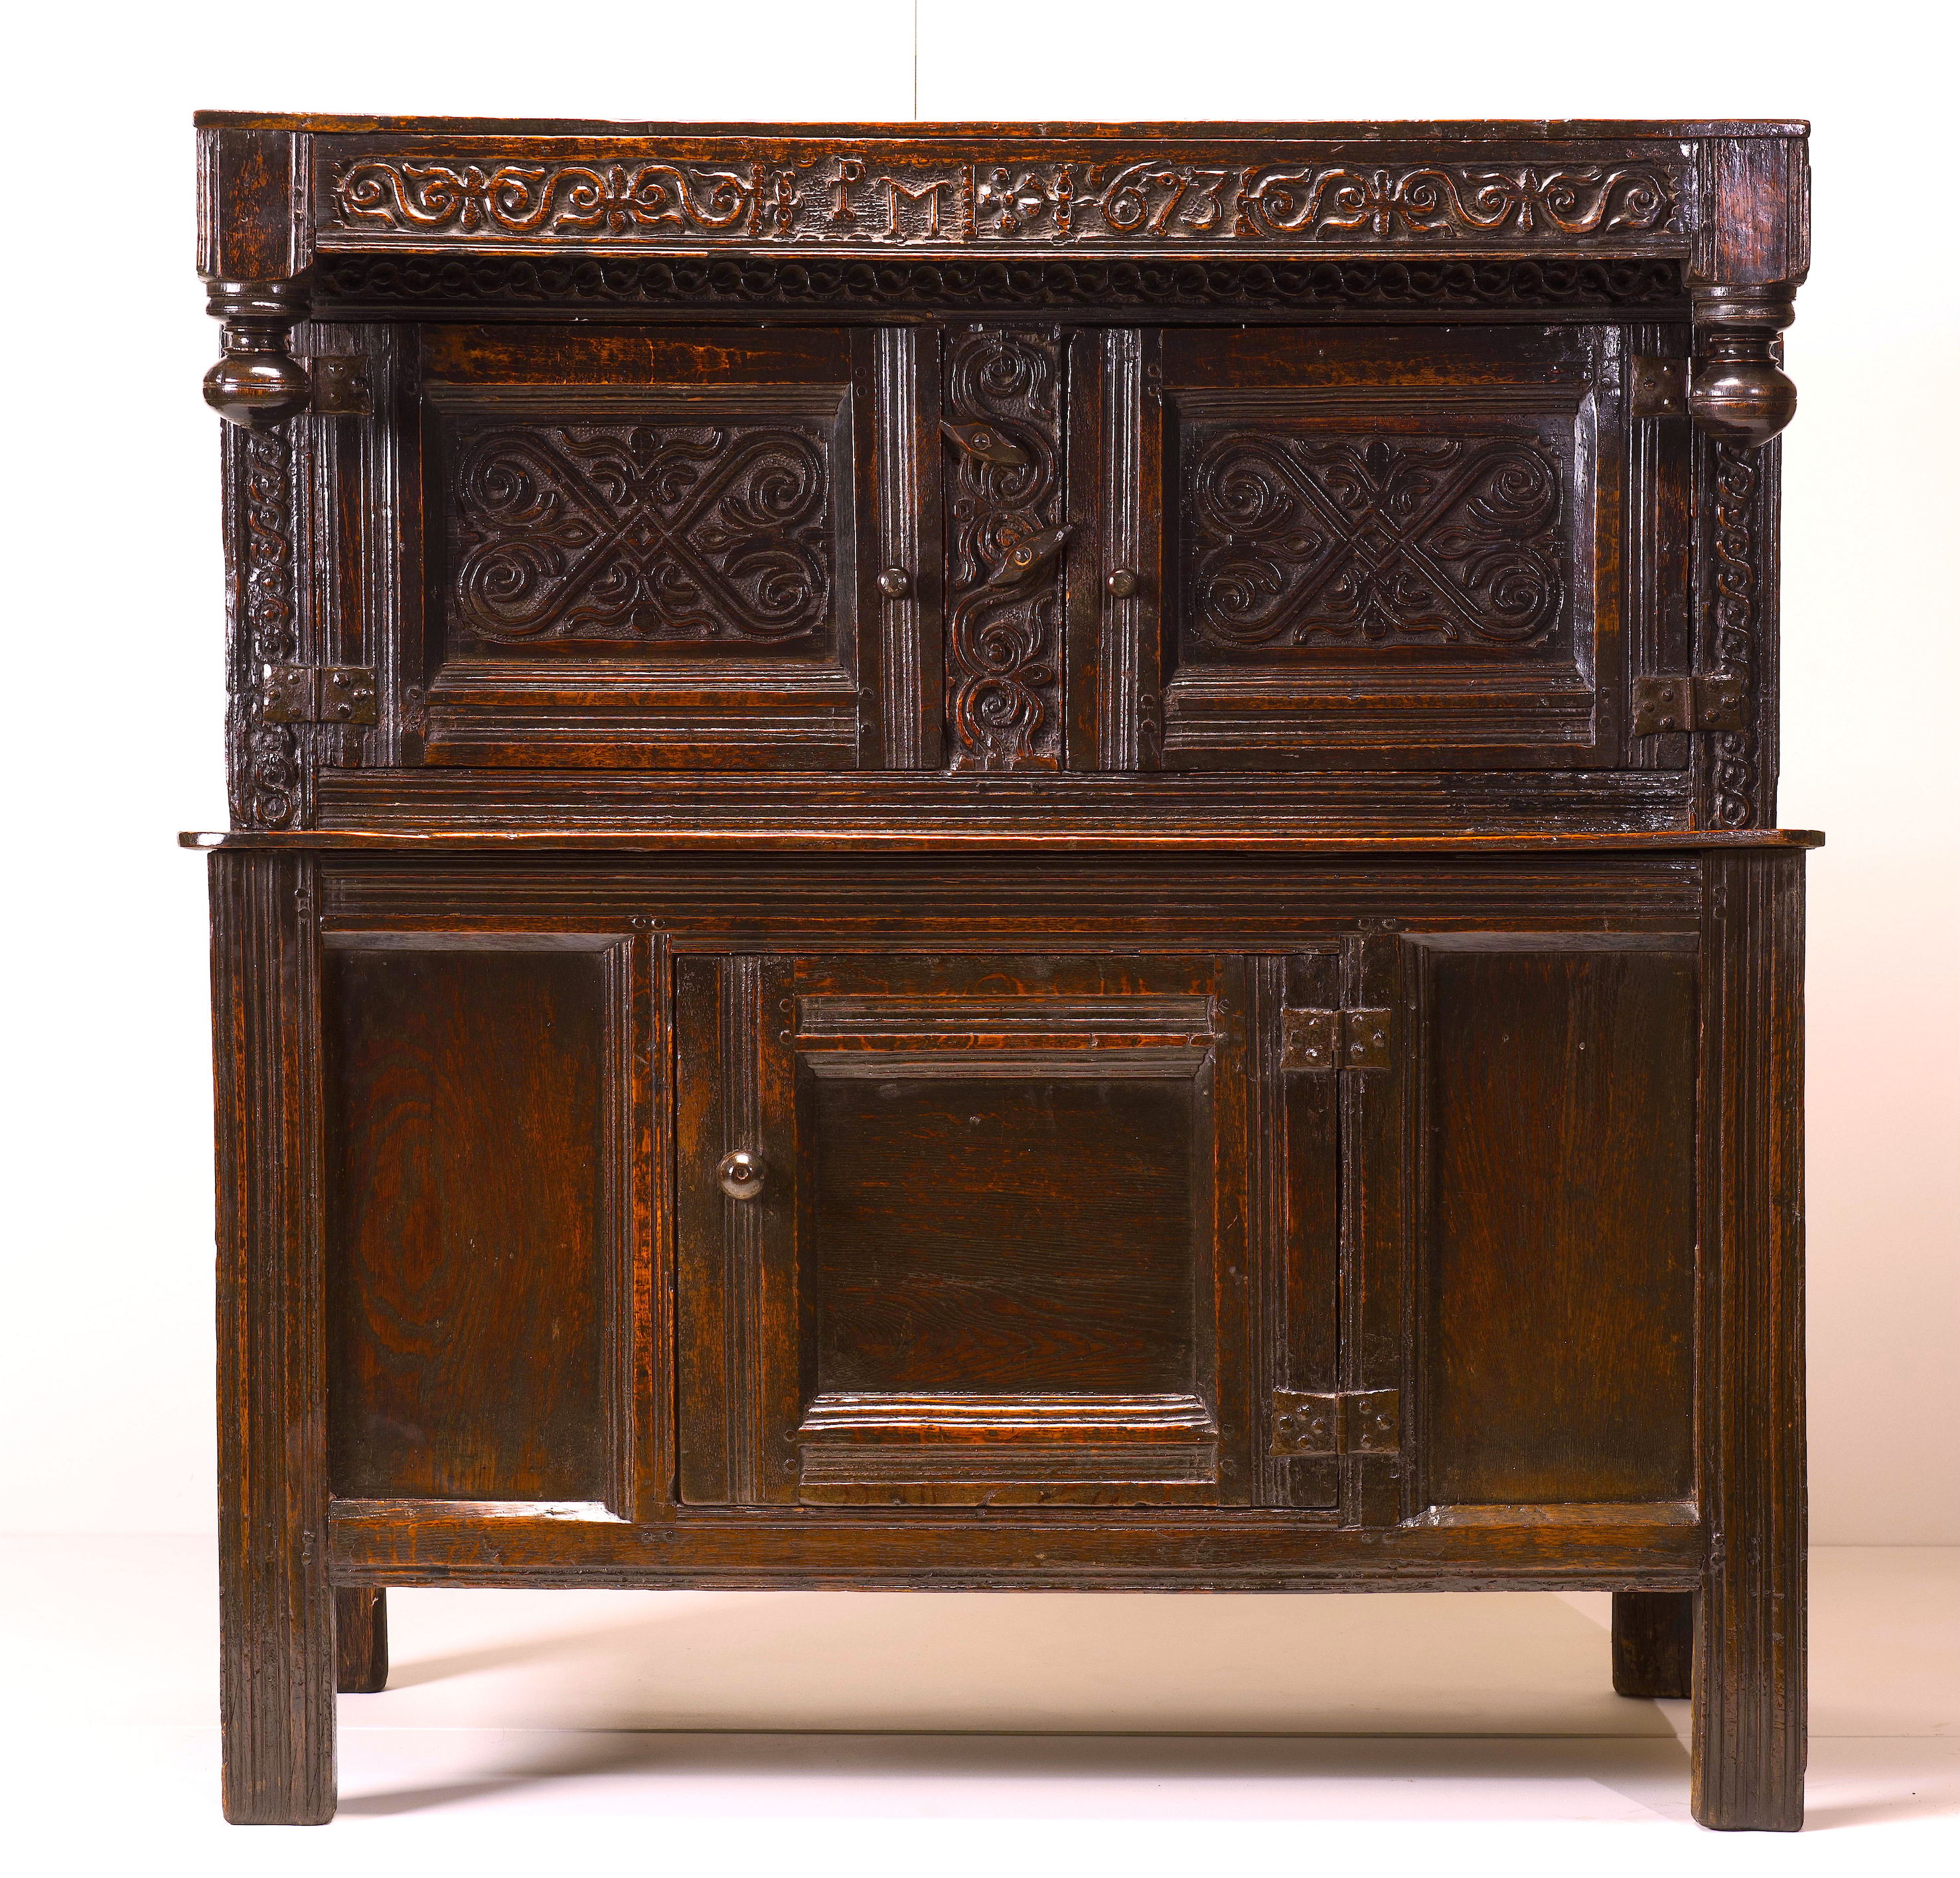 Rare 17th century child's press cupboard